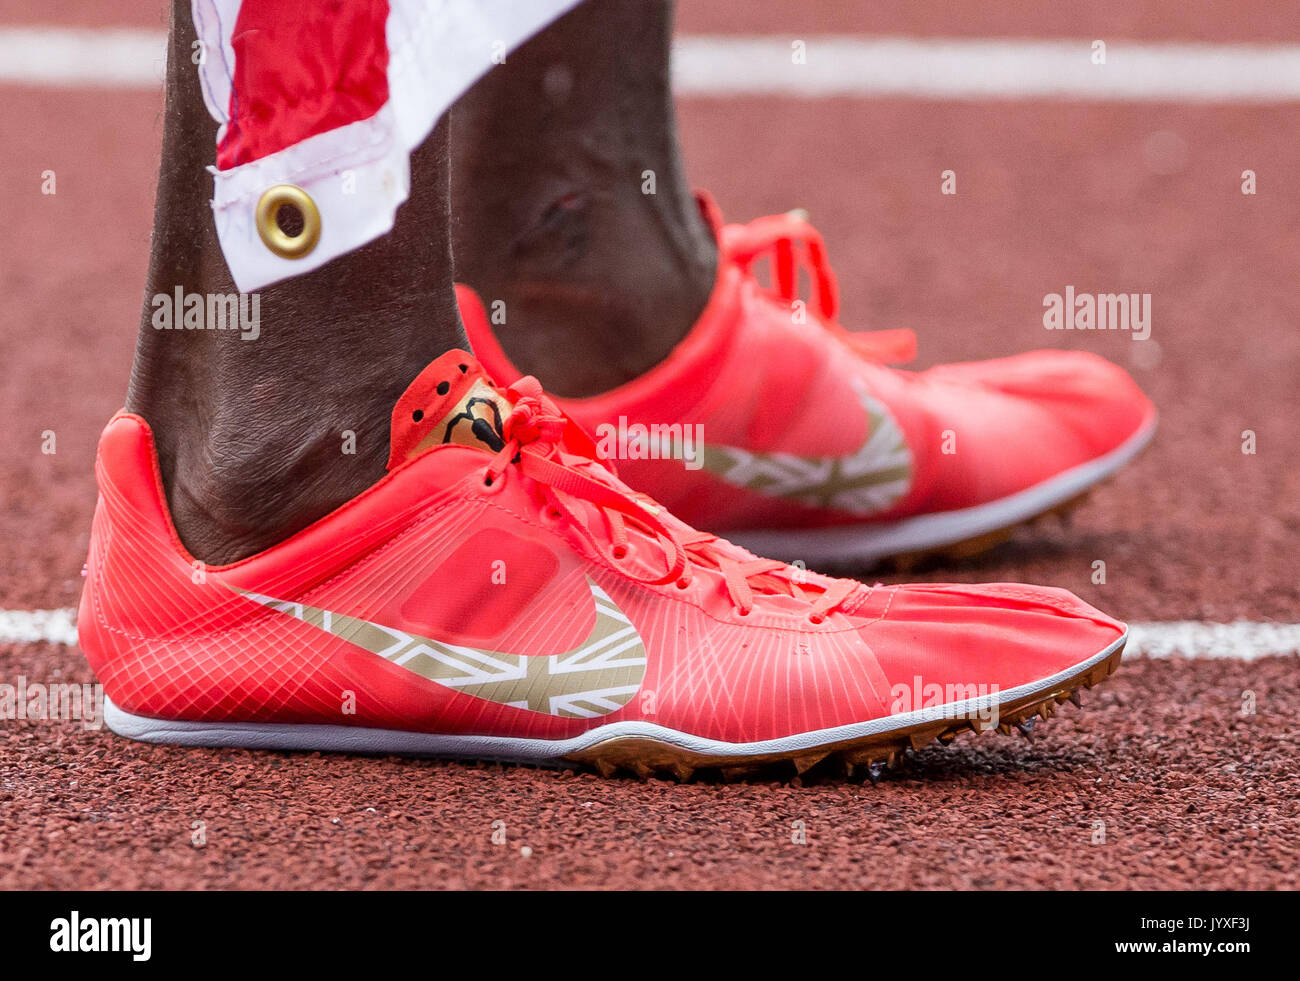 What Running Shoes Does Mo Farah Wear